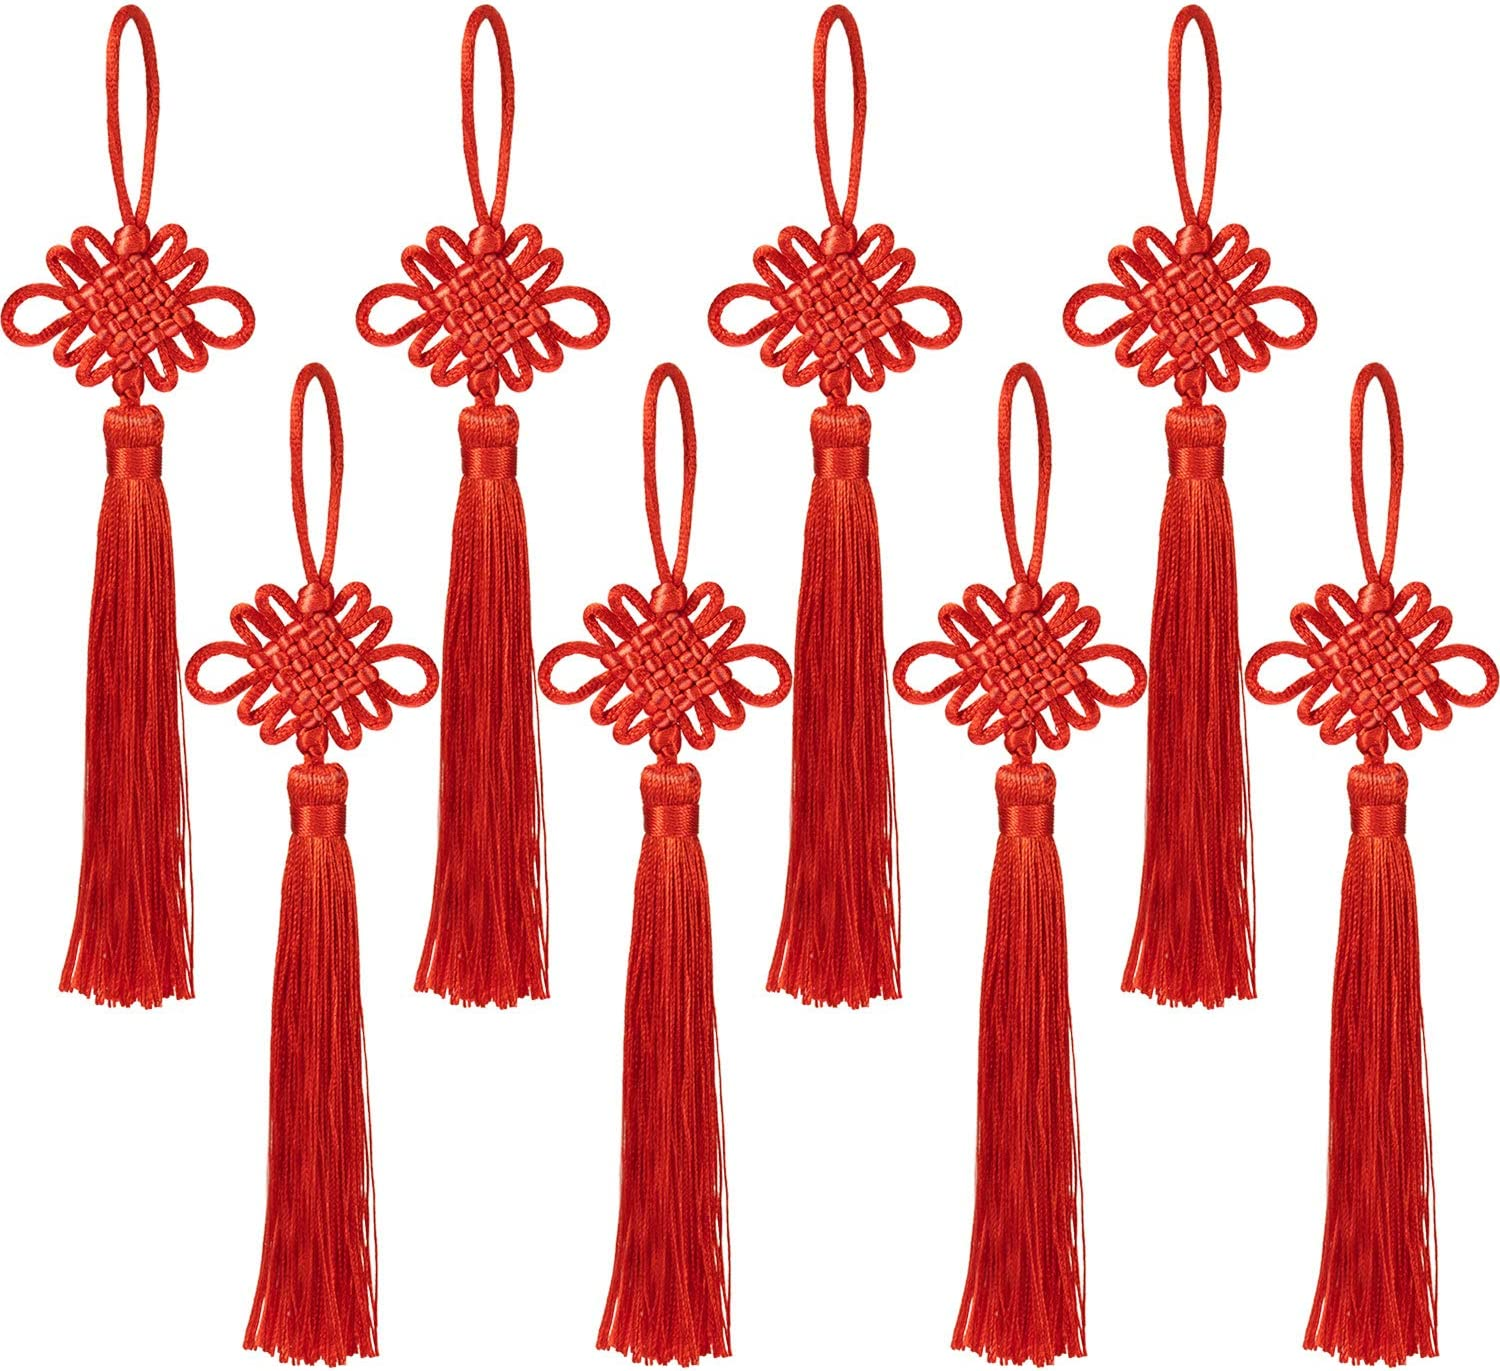 Decorative ornamental TASSEL/'S 4 Colours Pack of 10 or Pack of 25 FREE POST